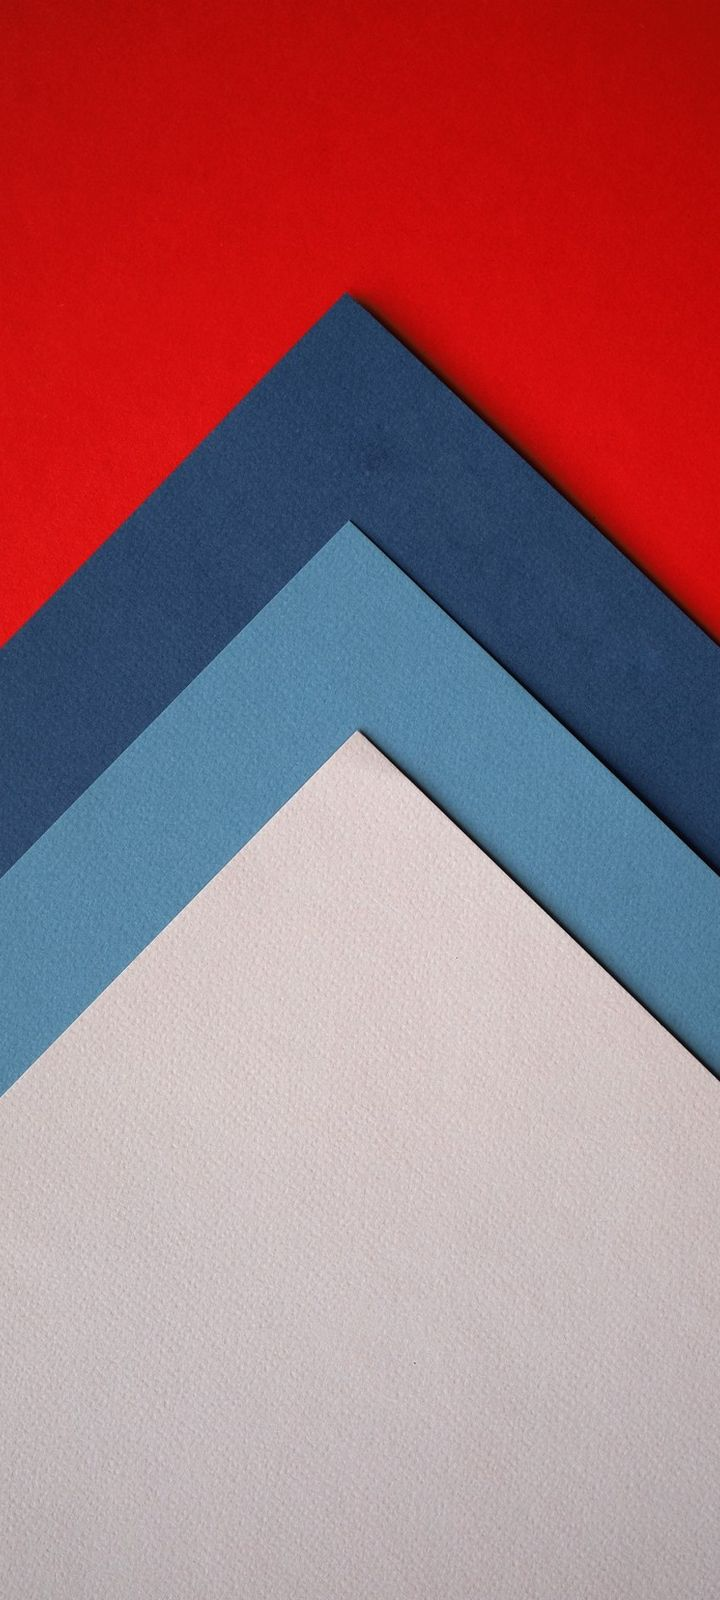 Paper Colorful Triangles Wallpaper 720x1600